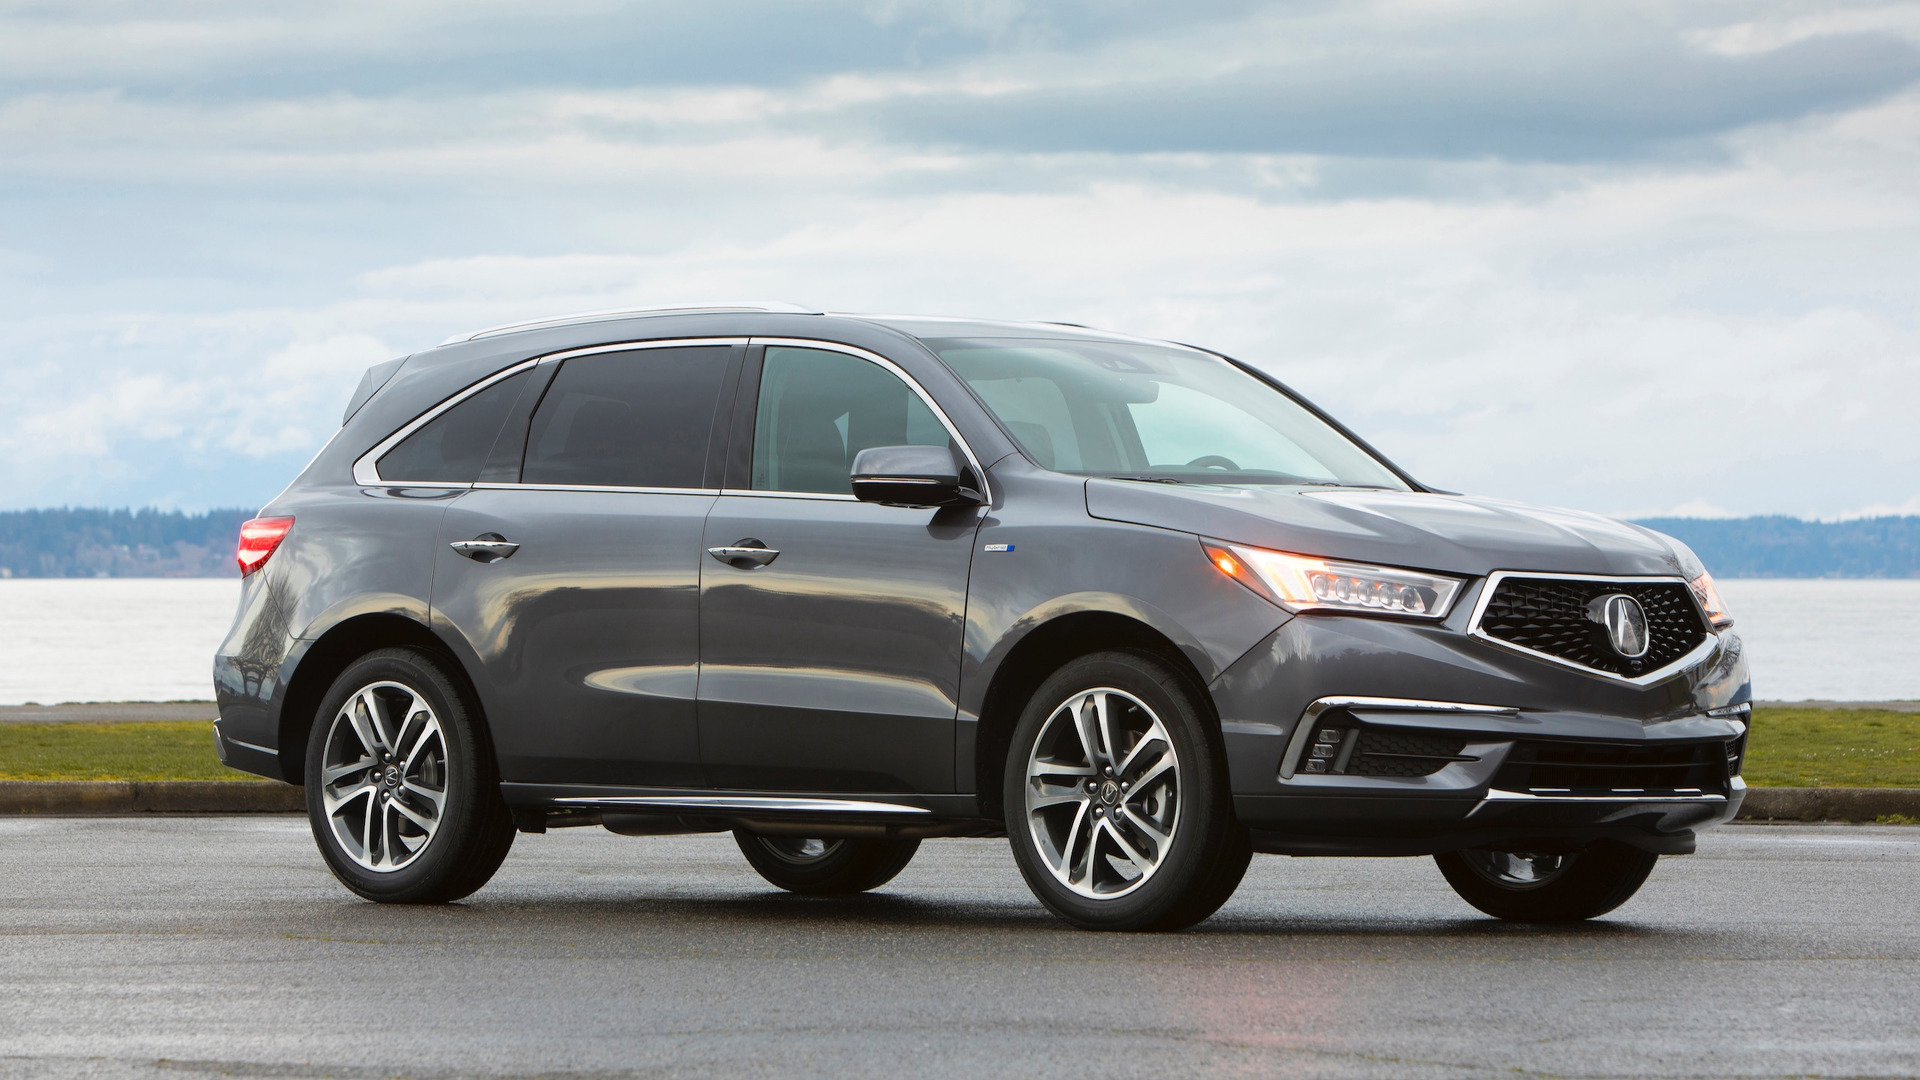 2017 Acura Mdx Sport Hybrid First Drive Try To Figure This One Out